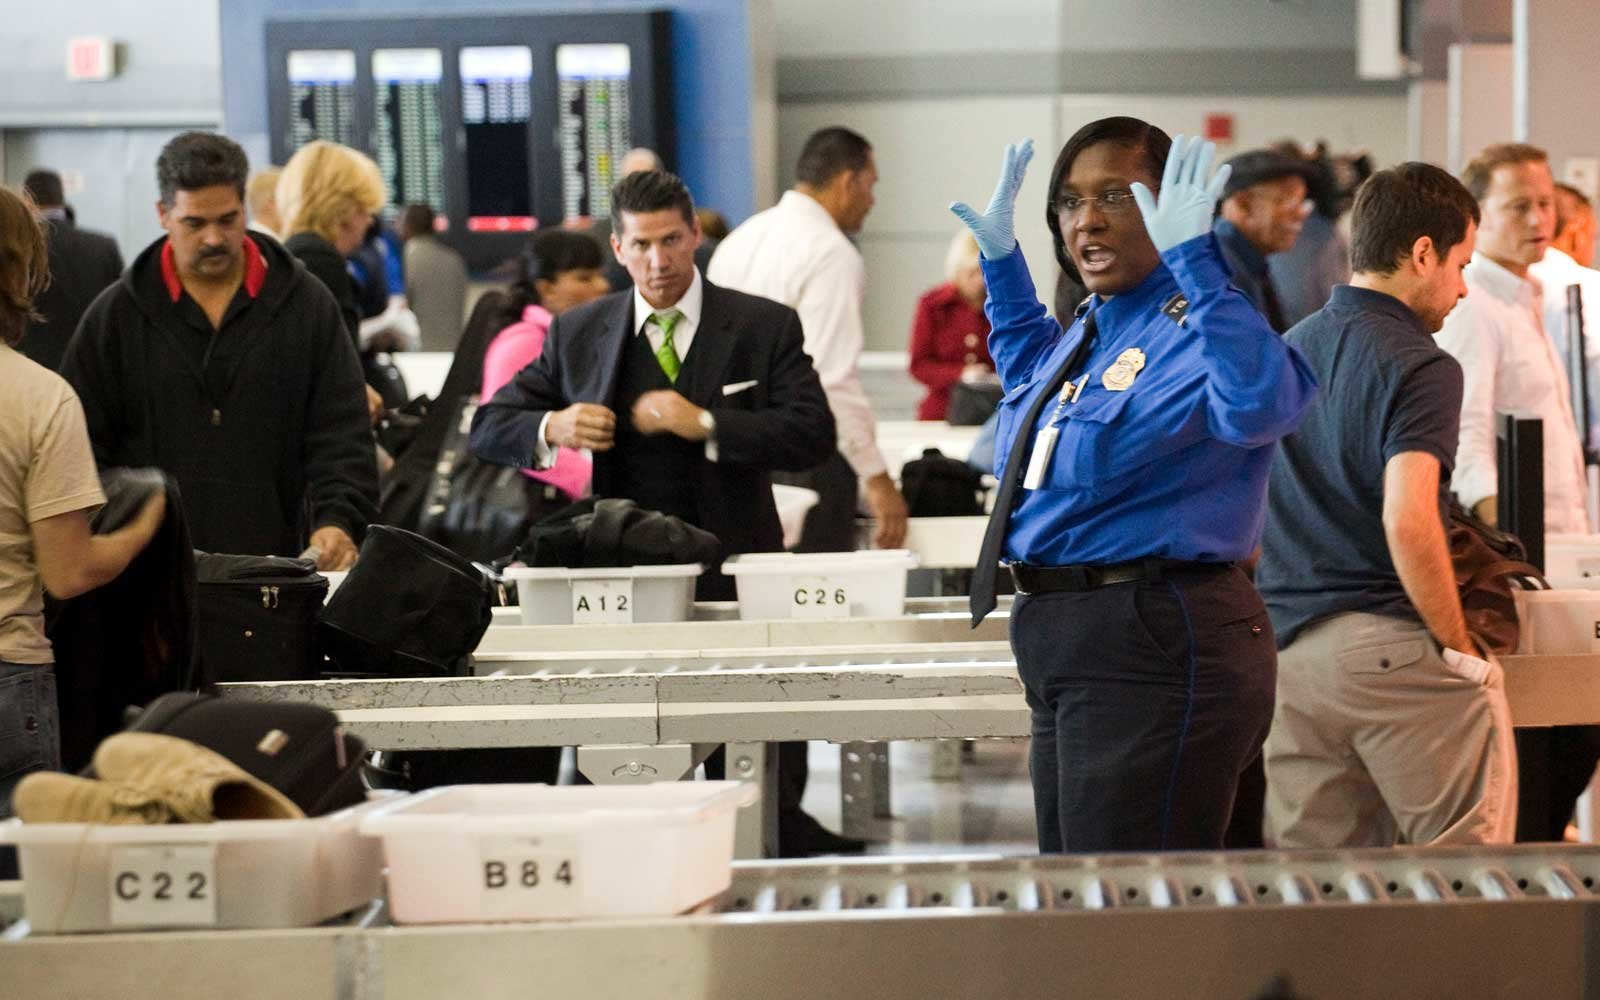 TSA closes checkpoint at BWI airport, citing 'excessive callouts'